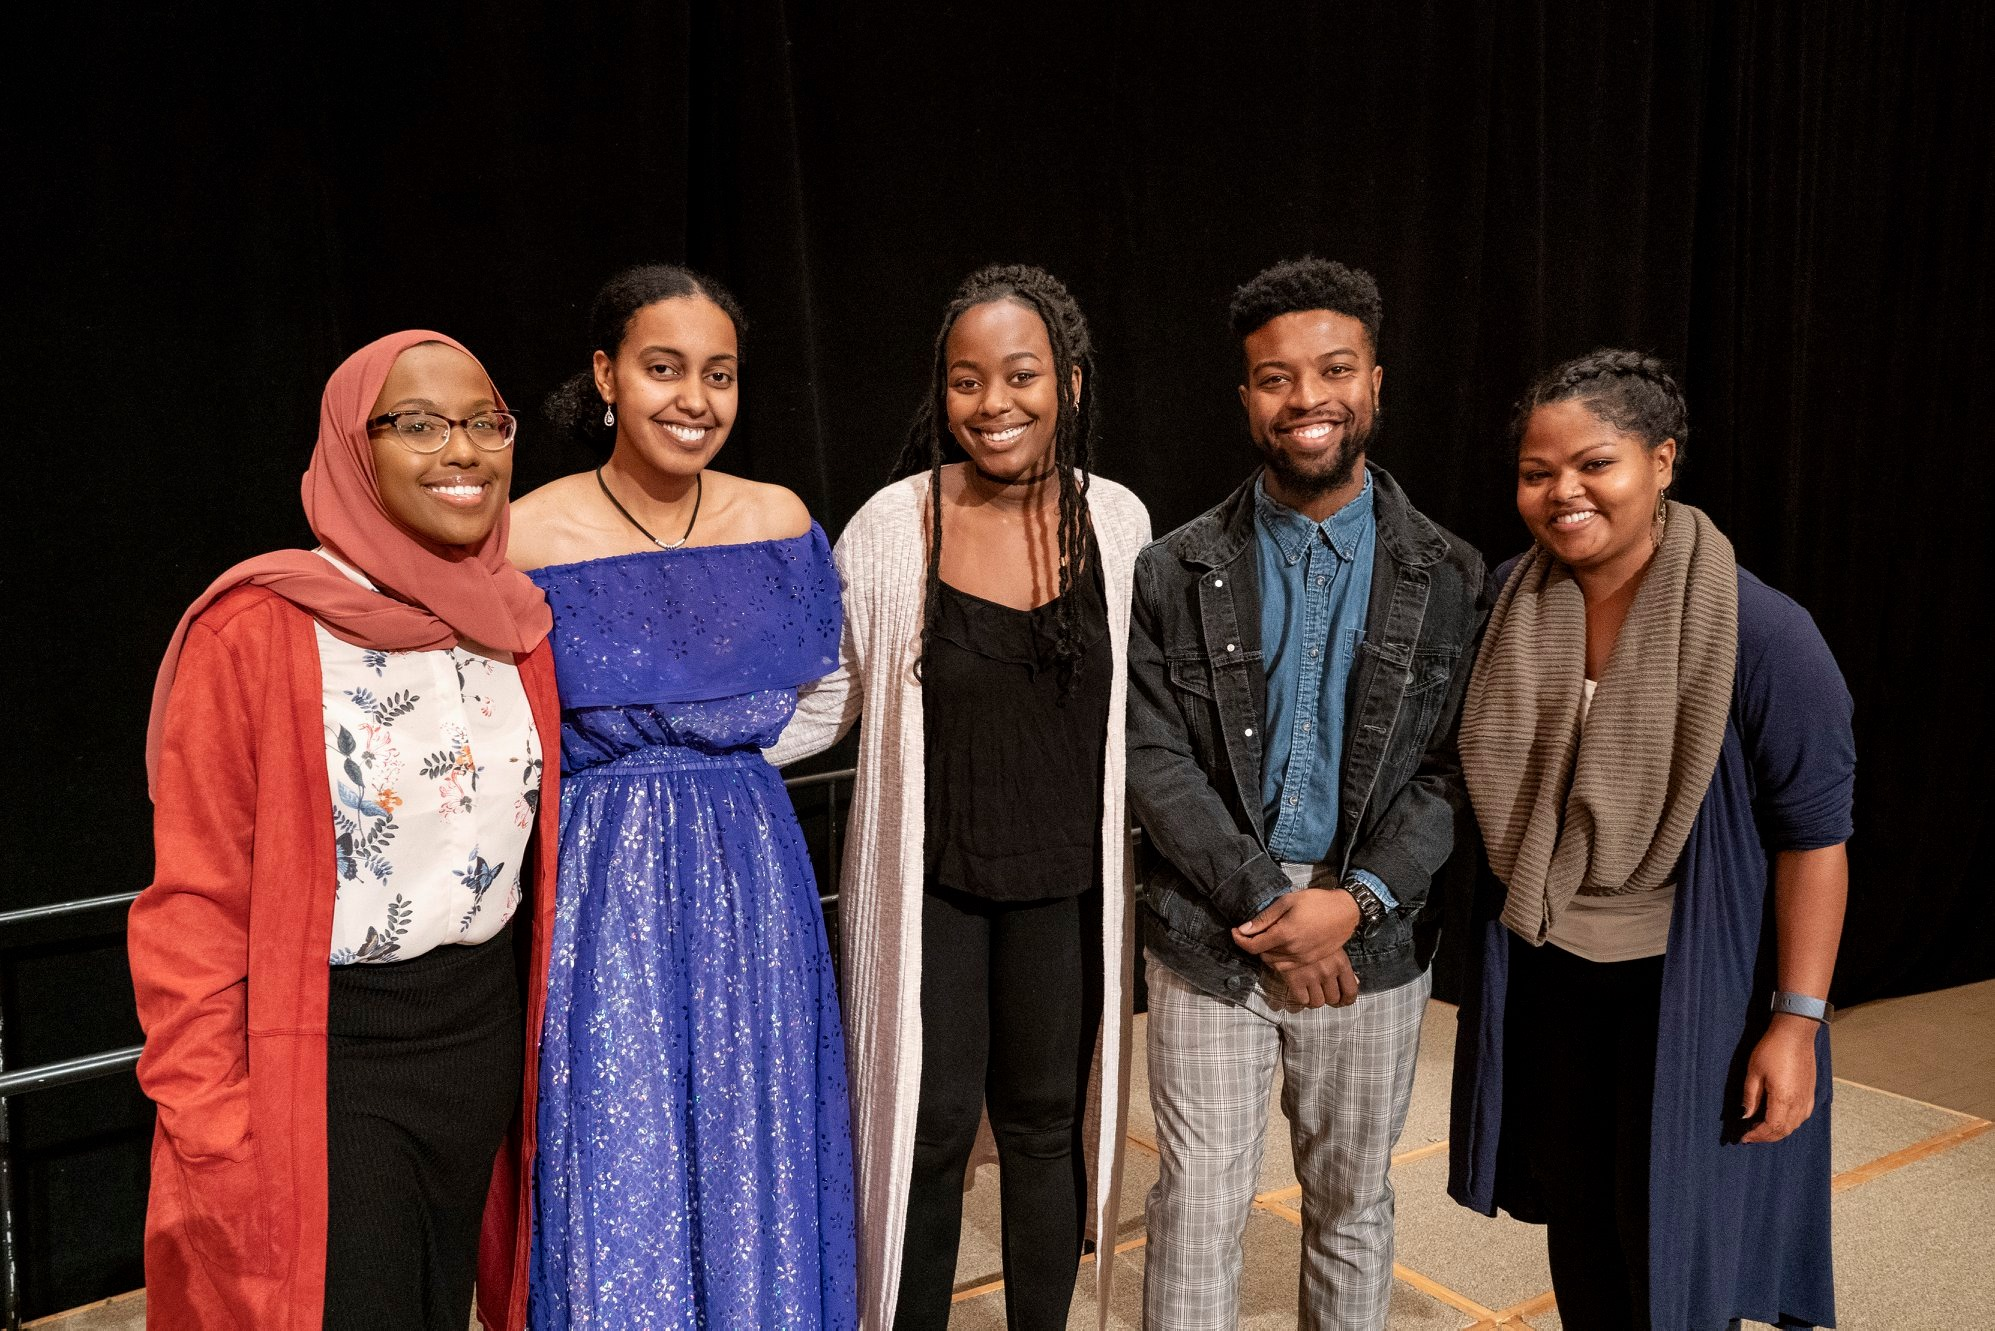 Anita Gay Hawthorne scholars at the 2019 MSS Scholarship Recognition Dinner